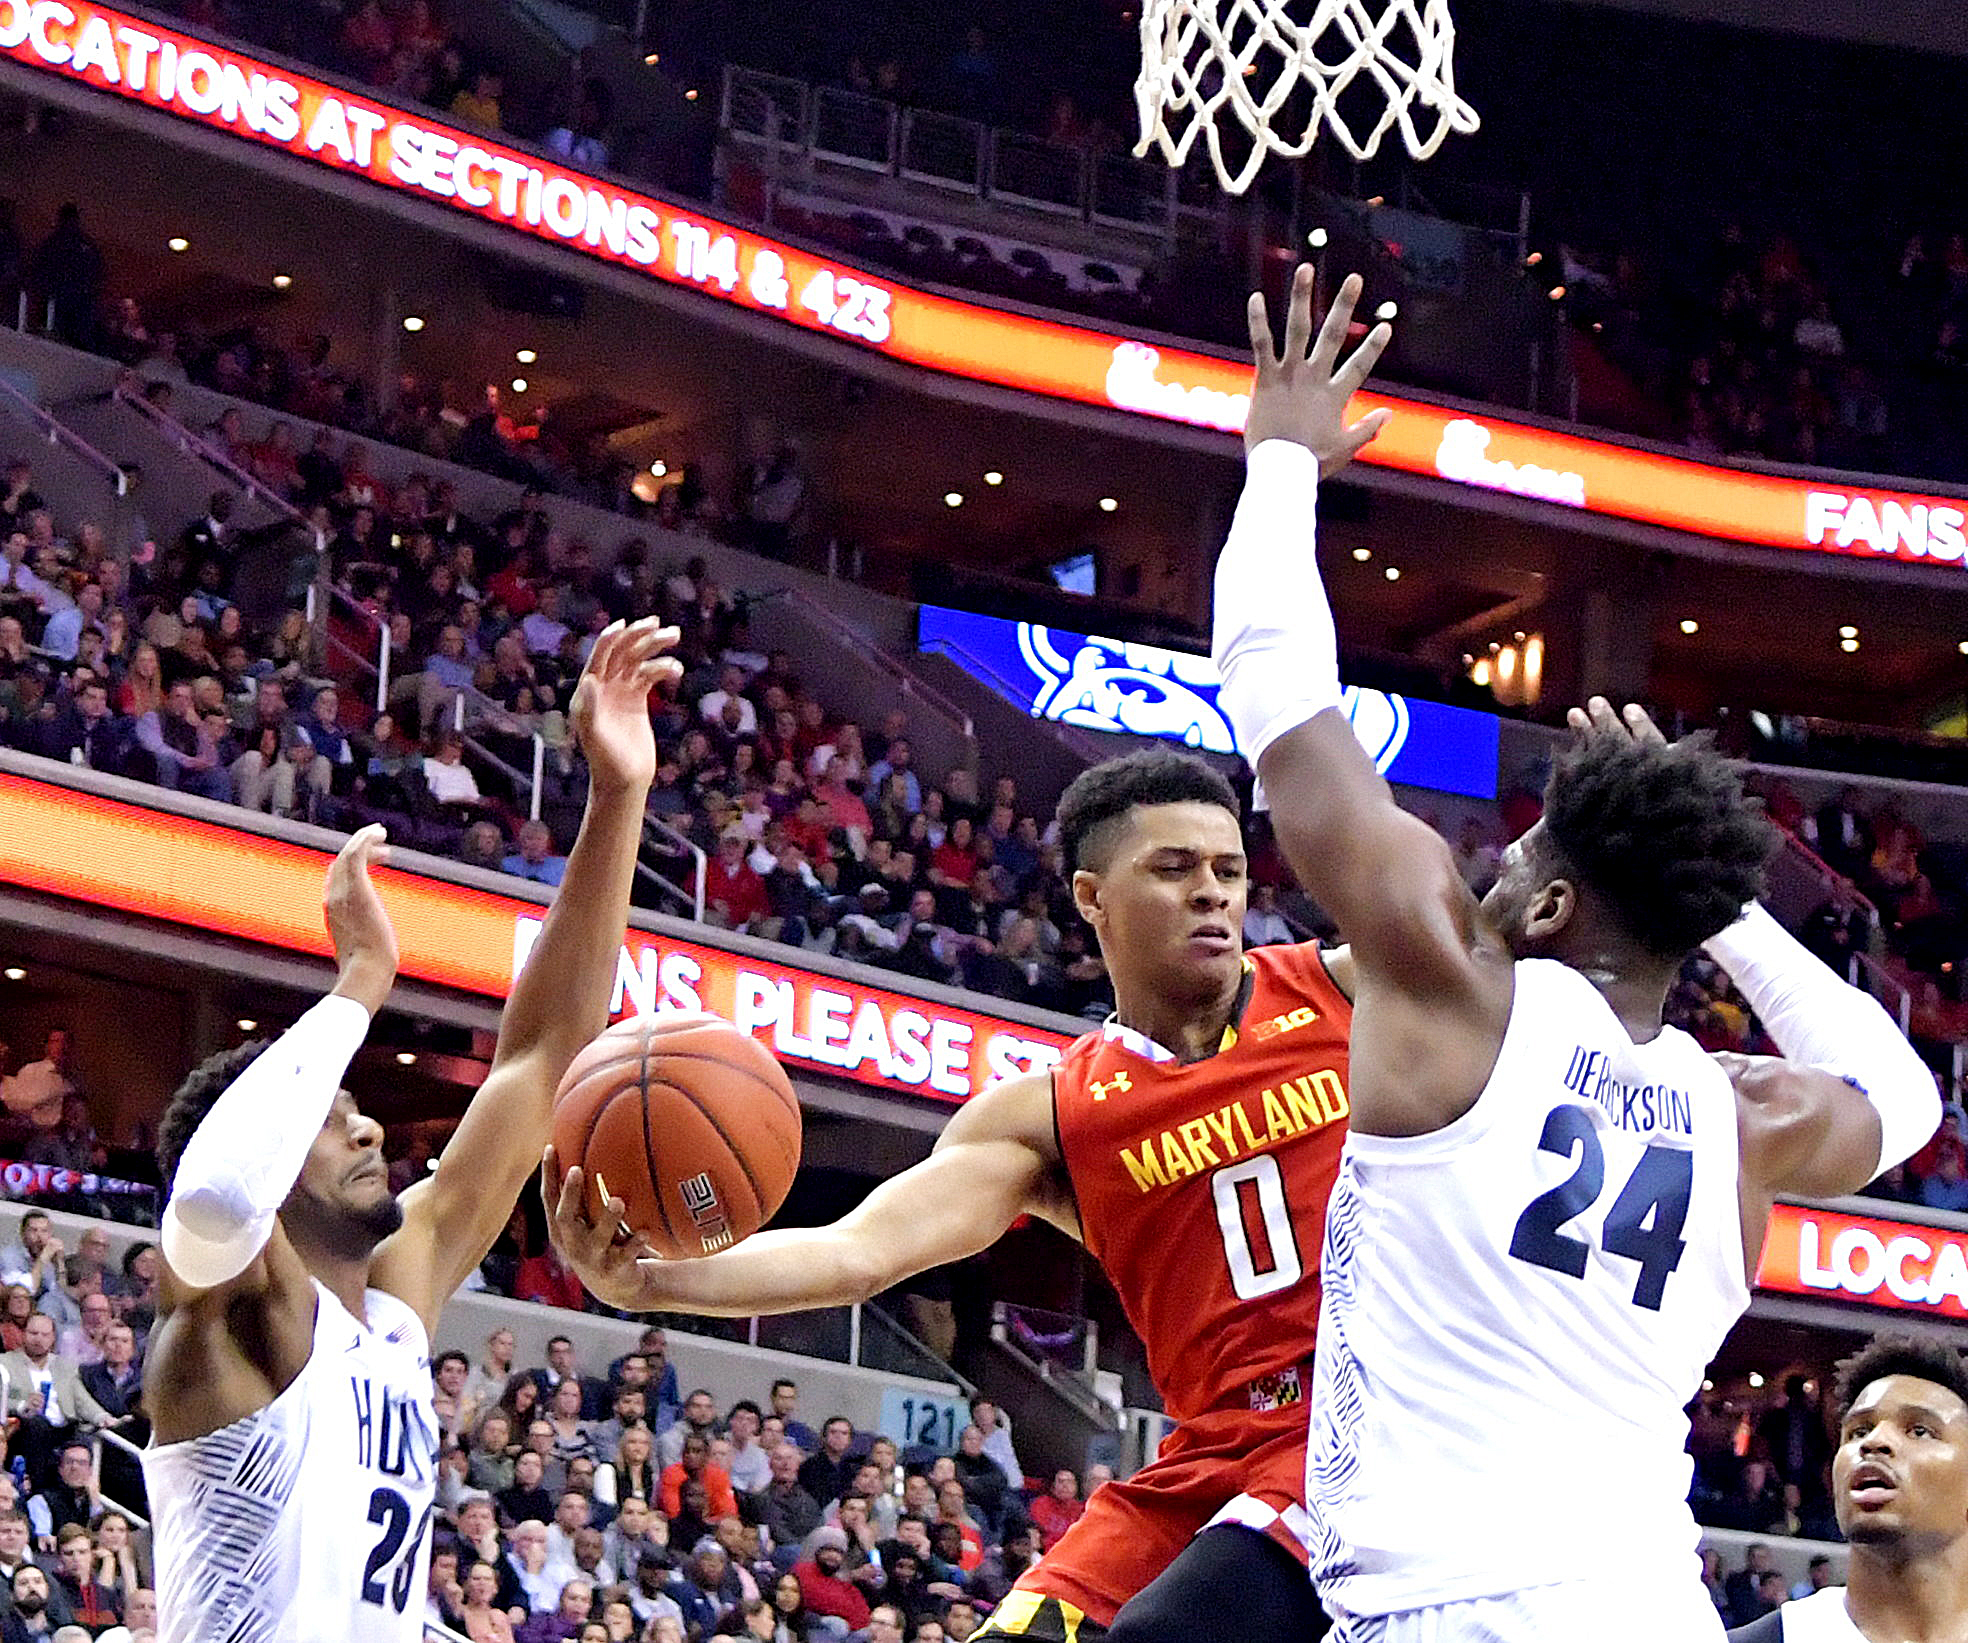 Maryland Terrapins guard Anthony Cowan is defended by Georgetown Hoyas forward Marcus Derrickson during Maryland's 76-75 road win at Verizon Center in northwest D.C. on Tuesday, Nov. 15. /Photo by John E. De Freitas